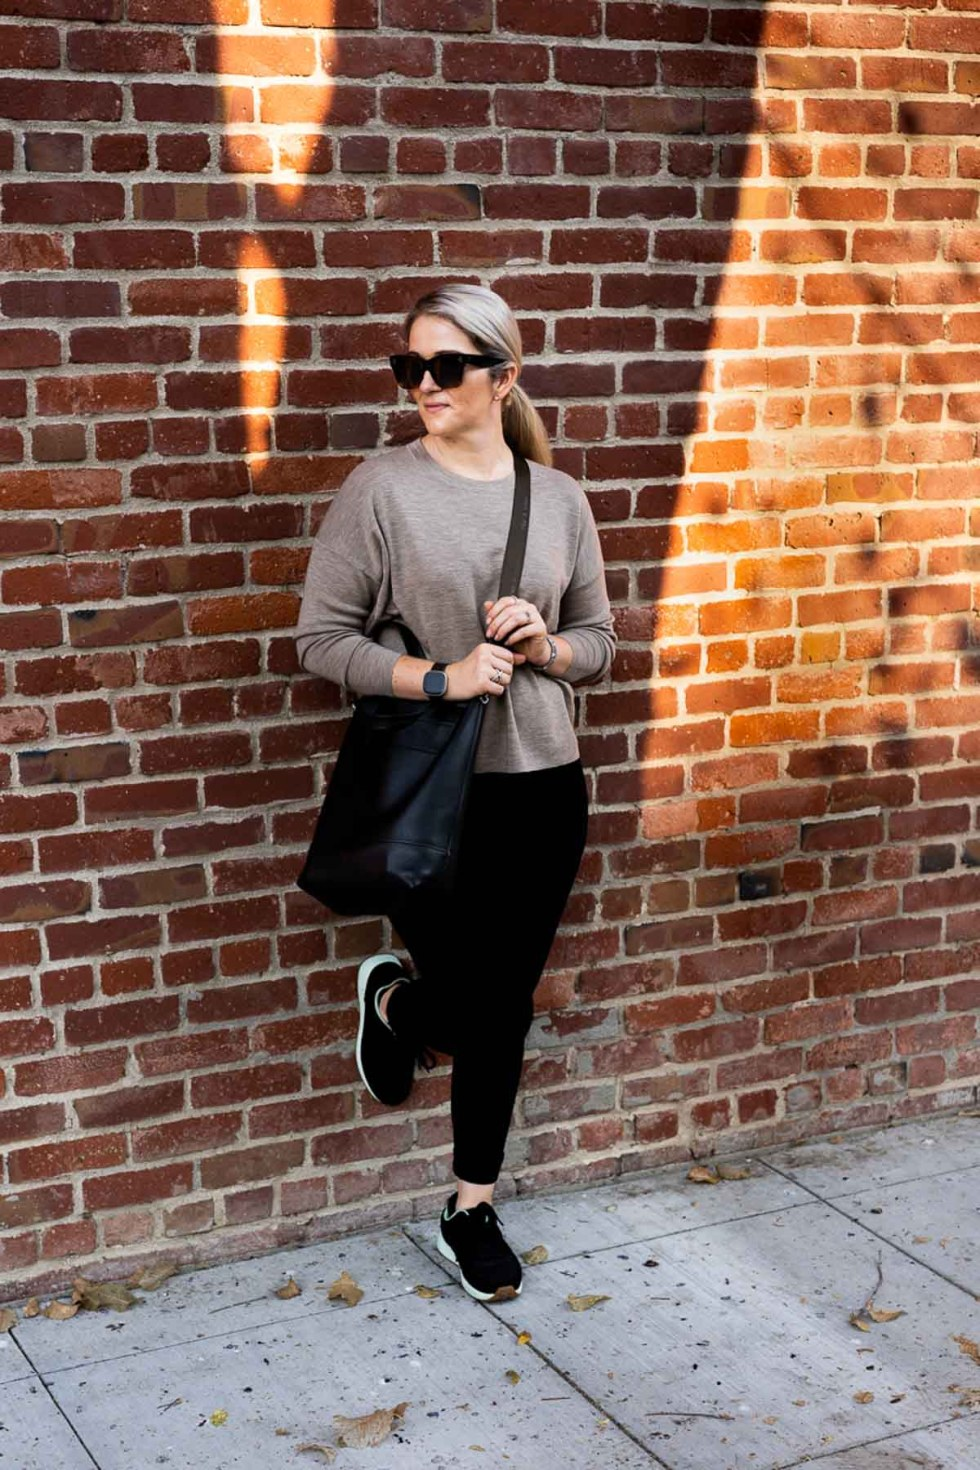 Walking Fall Travel Outfits - Eileen Fisher Sweater + Black Jeans